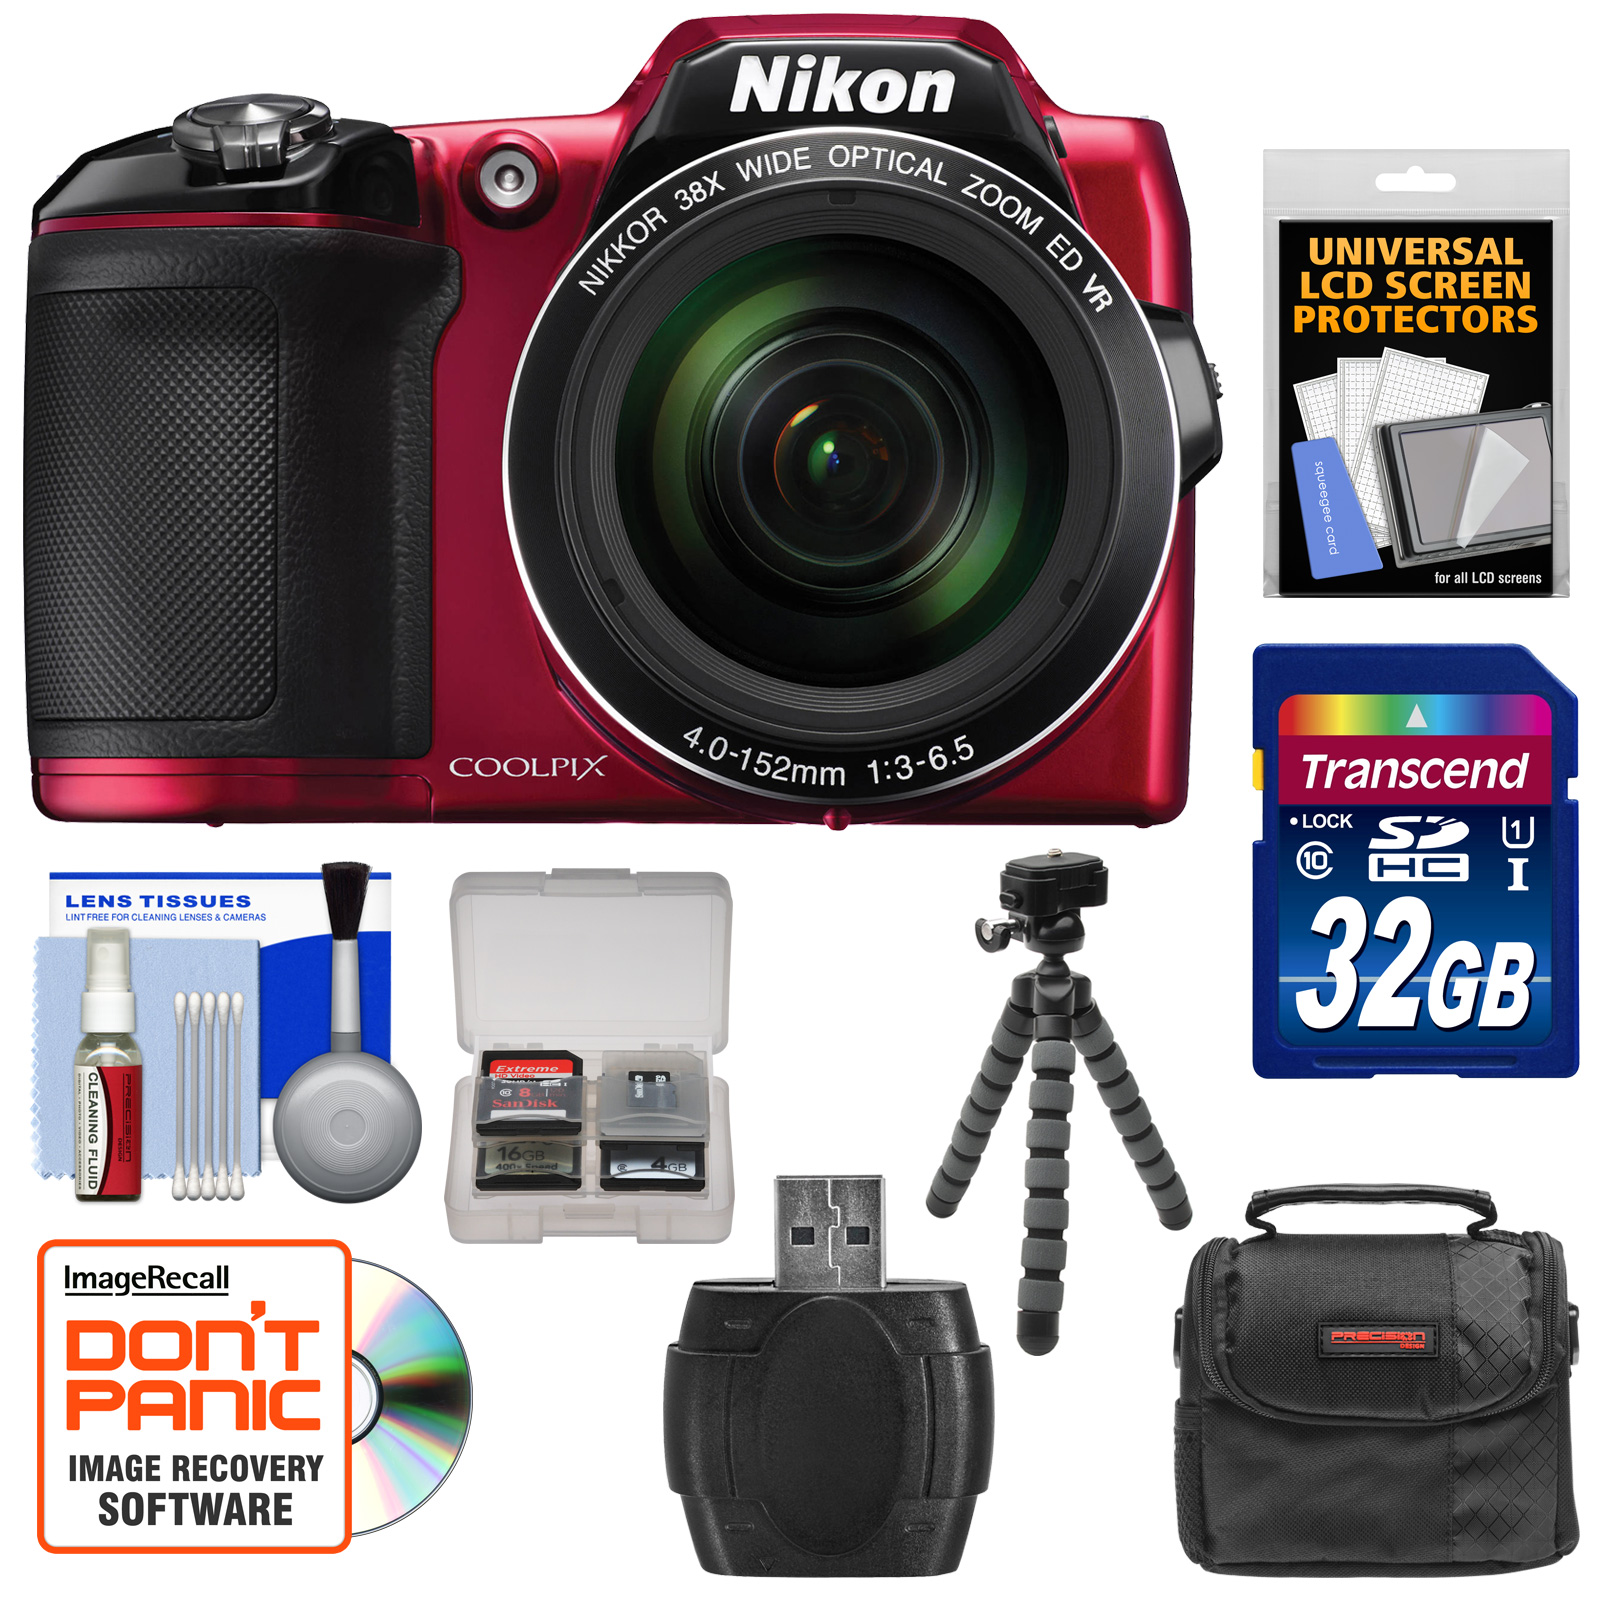 Nikon Coolpix L840 Wi-Fi Digital Camera (Red) - Factory Refurbished with 32GB Card + Case + Flex Tripod + Kit